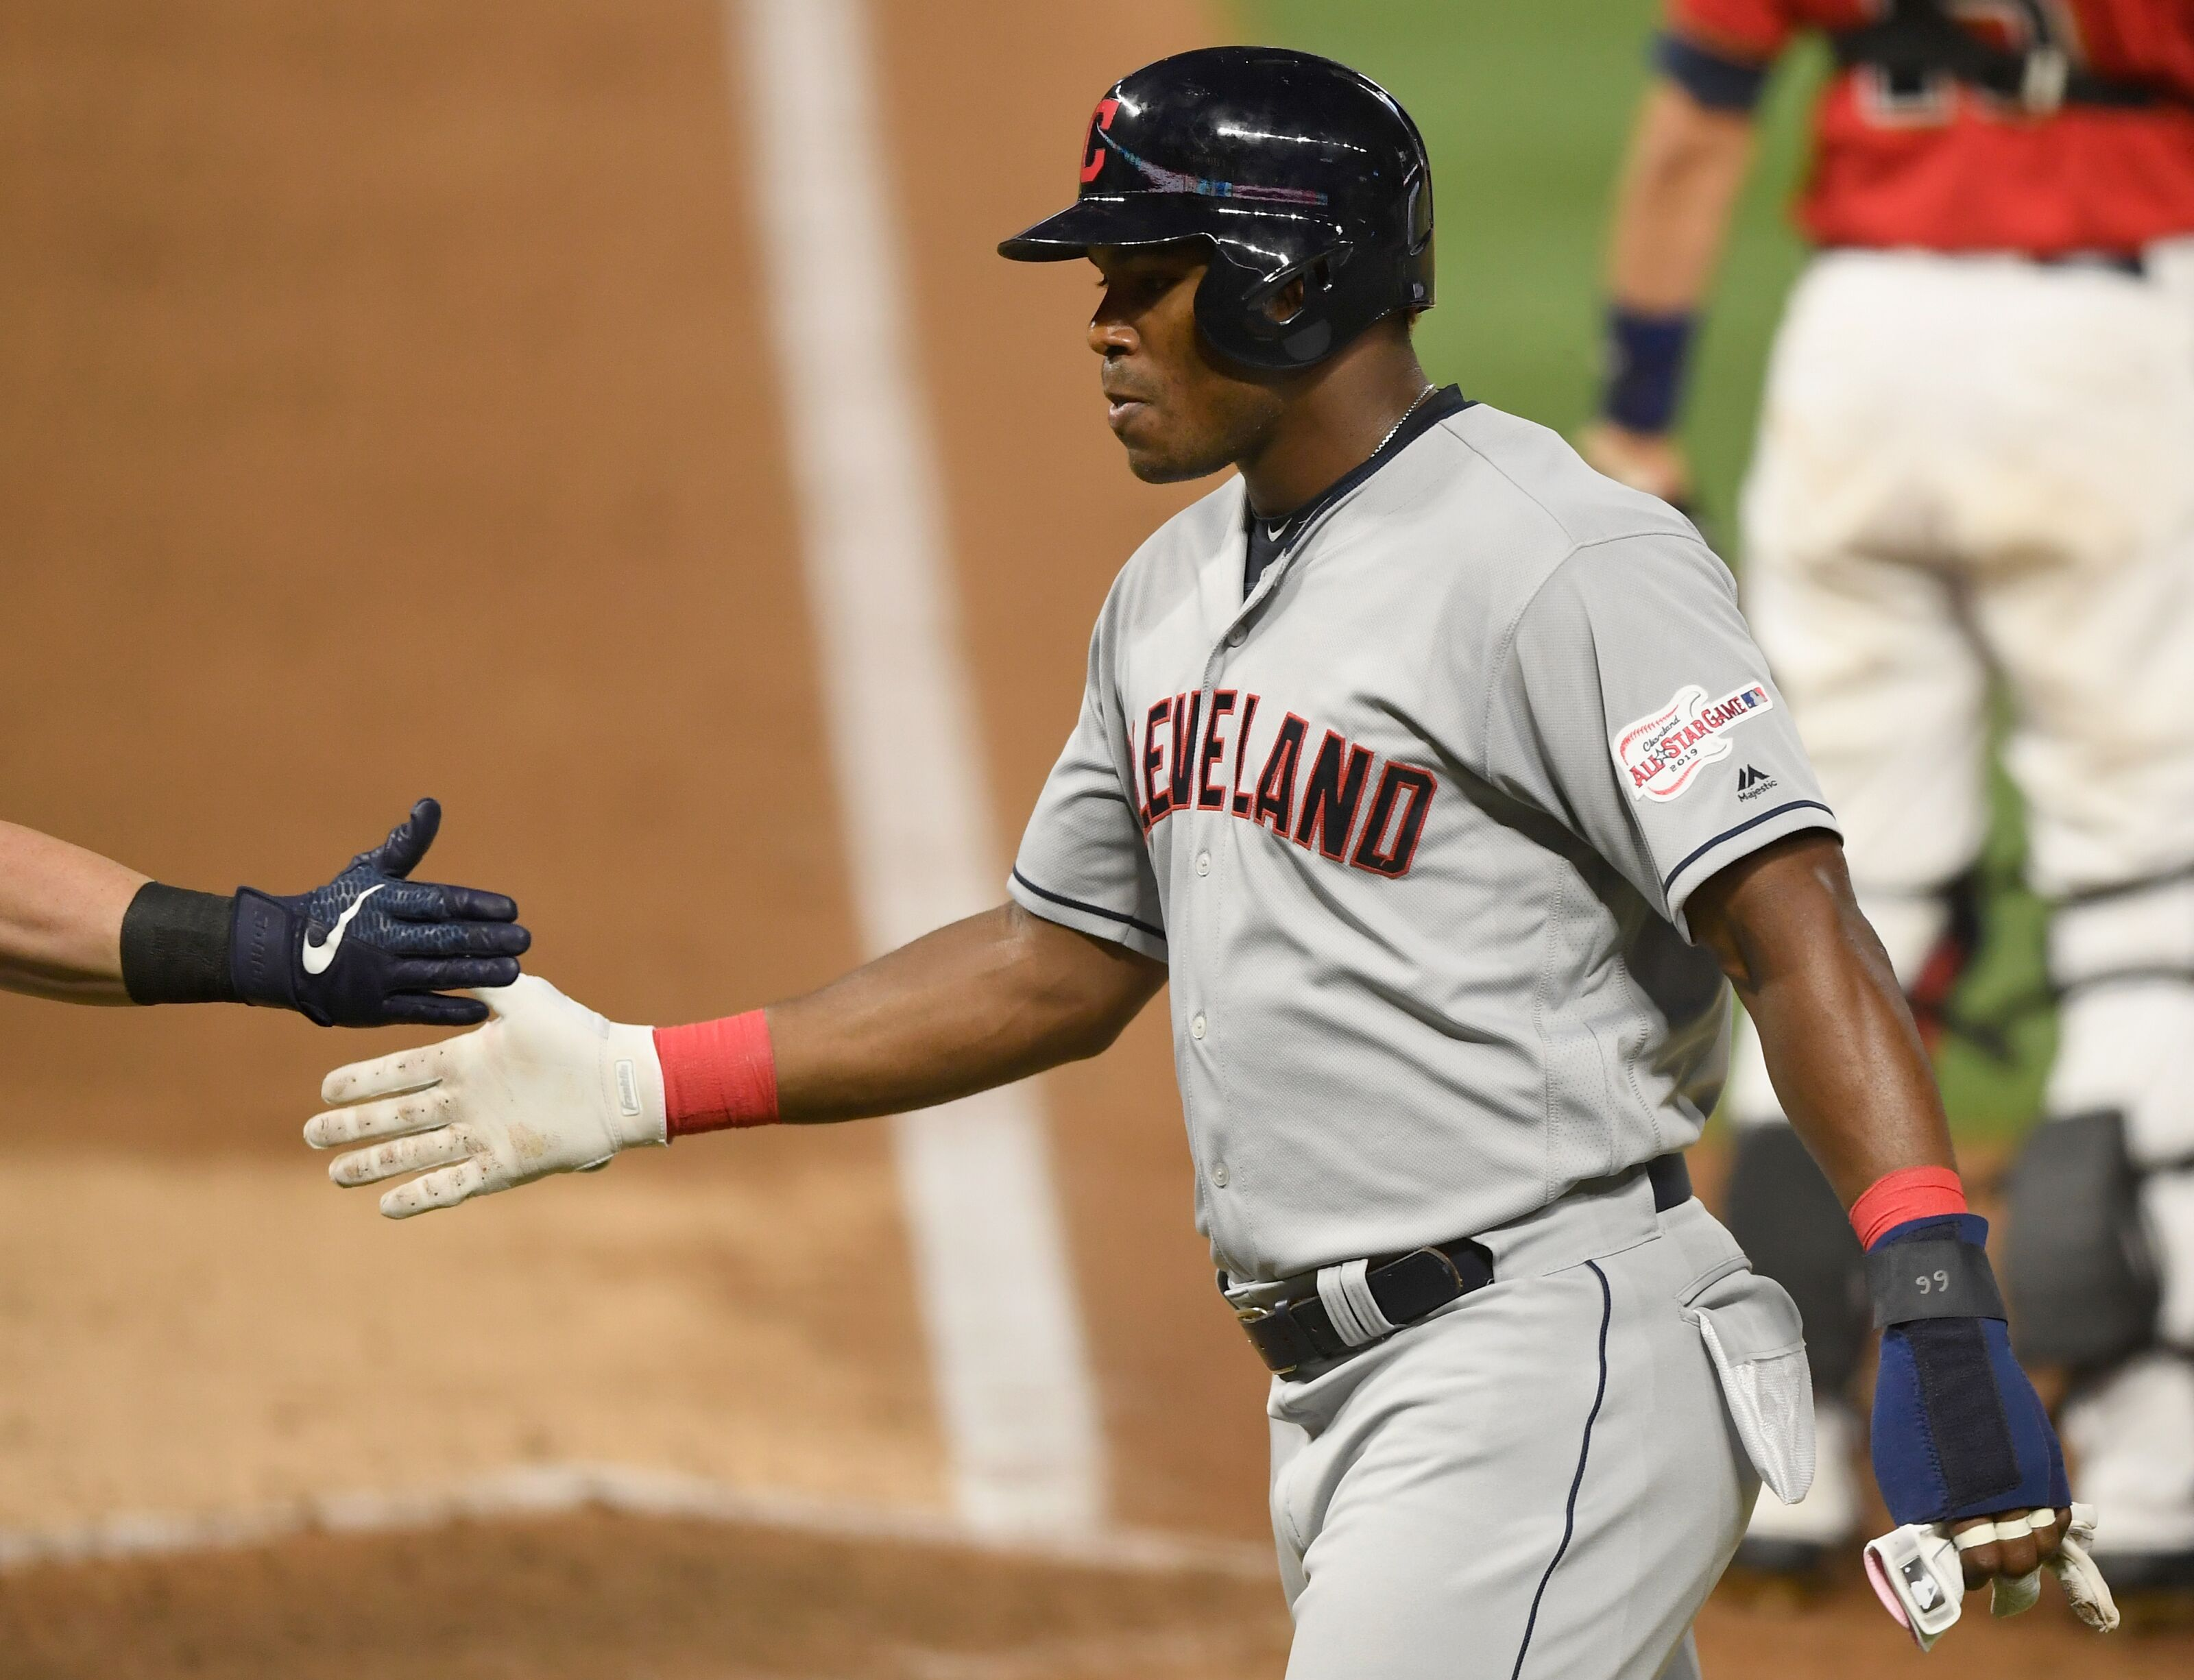 Cleveland Indians: Re-signing Yasiel Puig a realistic option?